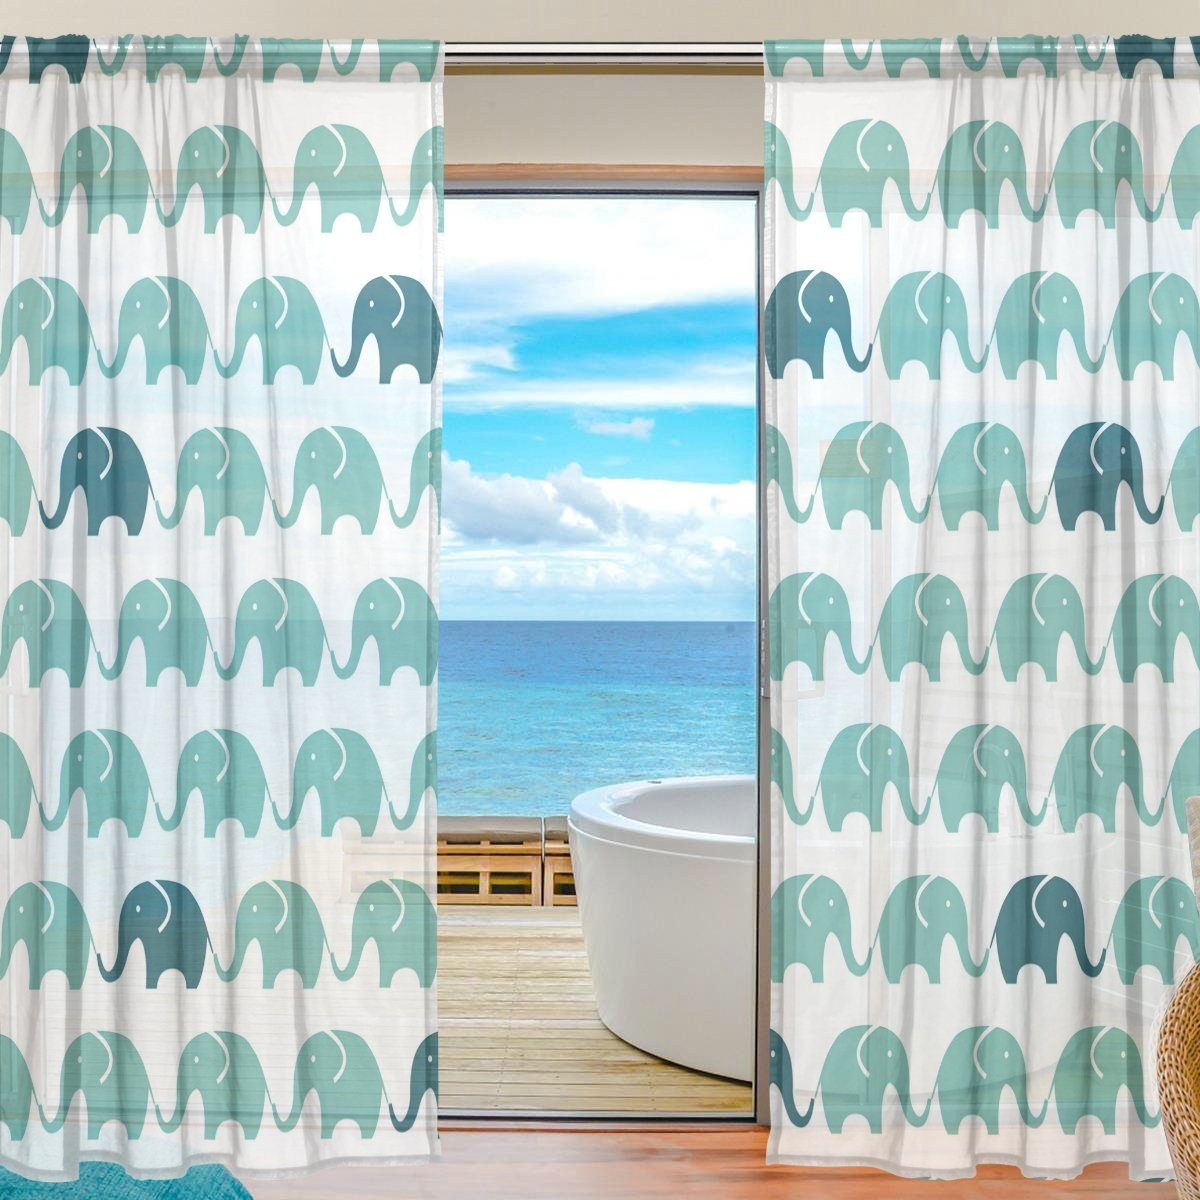 Vantaso Sheer Curtains 84 inch Long Blue And Green Elephants Seamless for Kids Girls Bedroom Living Room Window Decorative 2 Panels